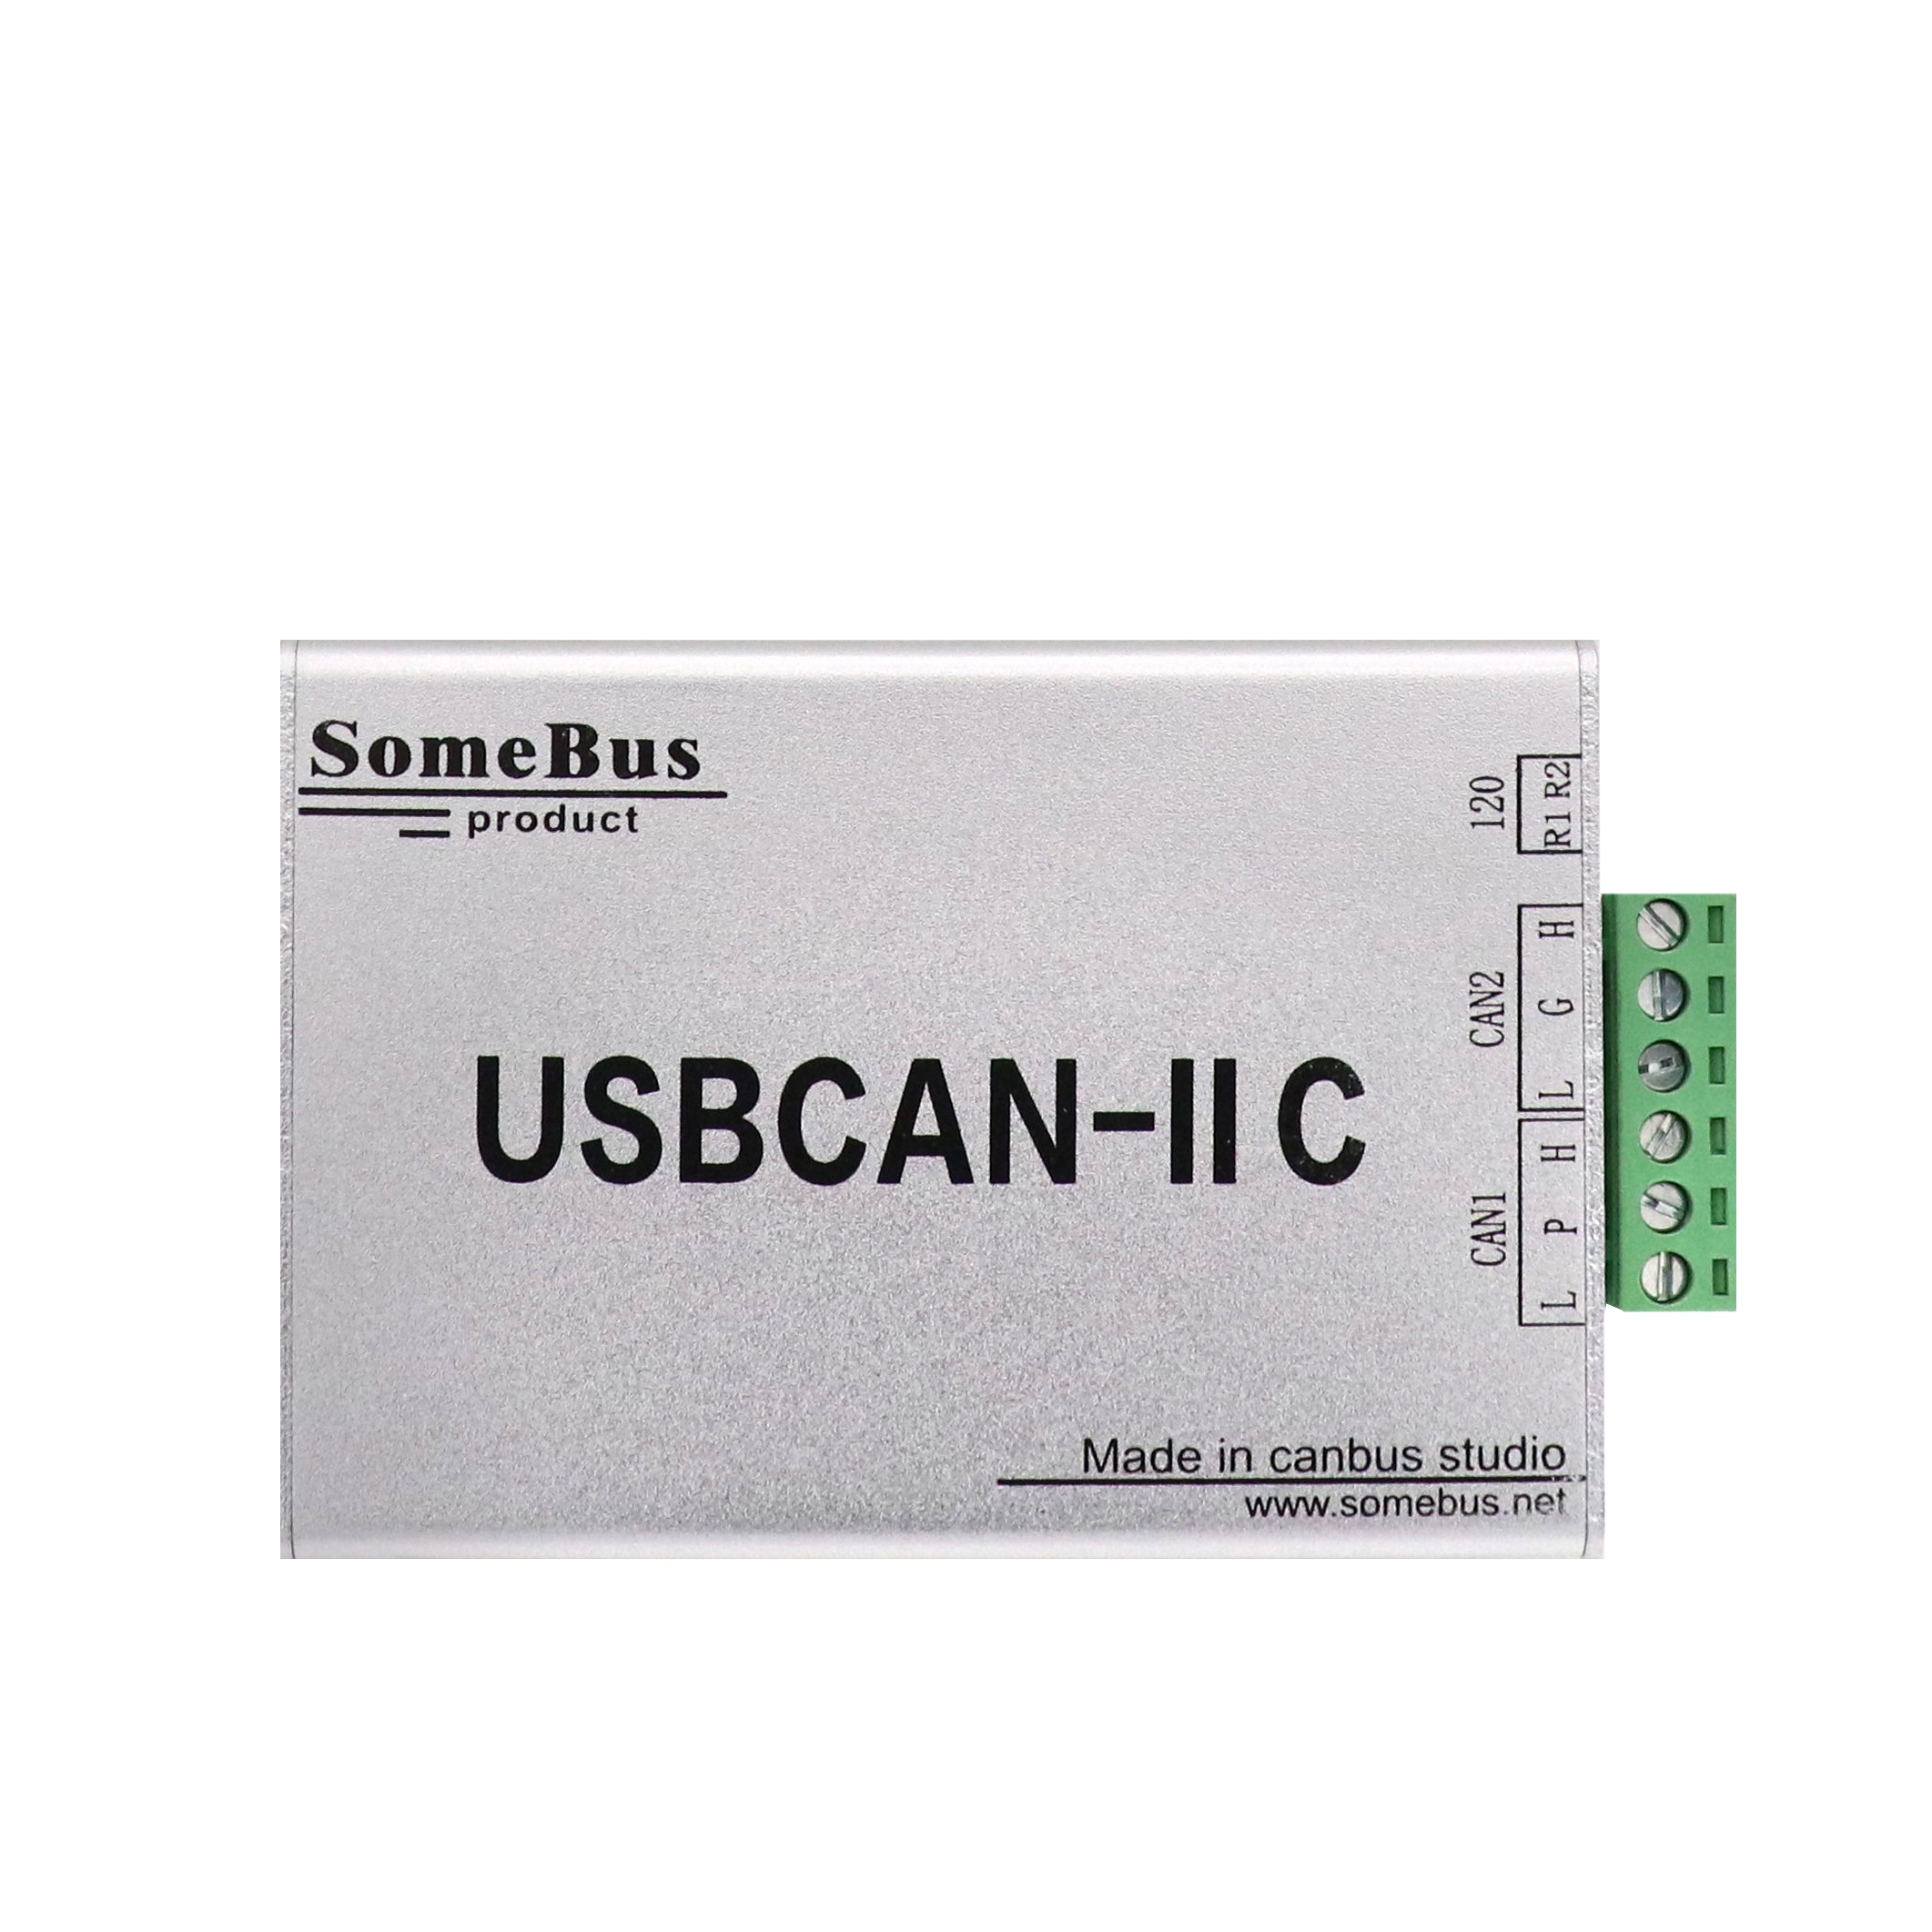 Usb Can Bus Modul Used For Data Receiving And Sending, Data Can Be Analyzed.